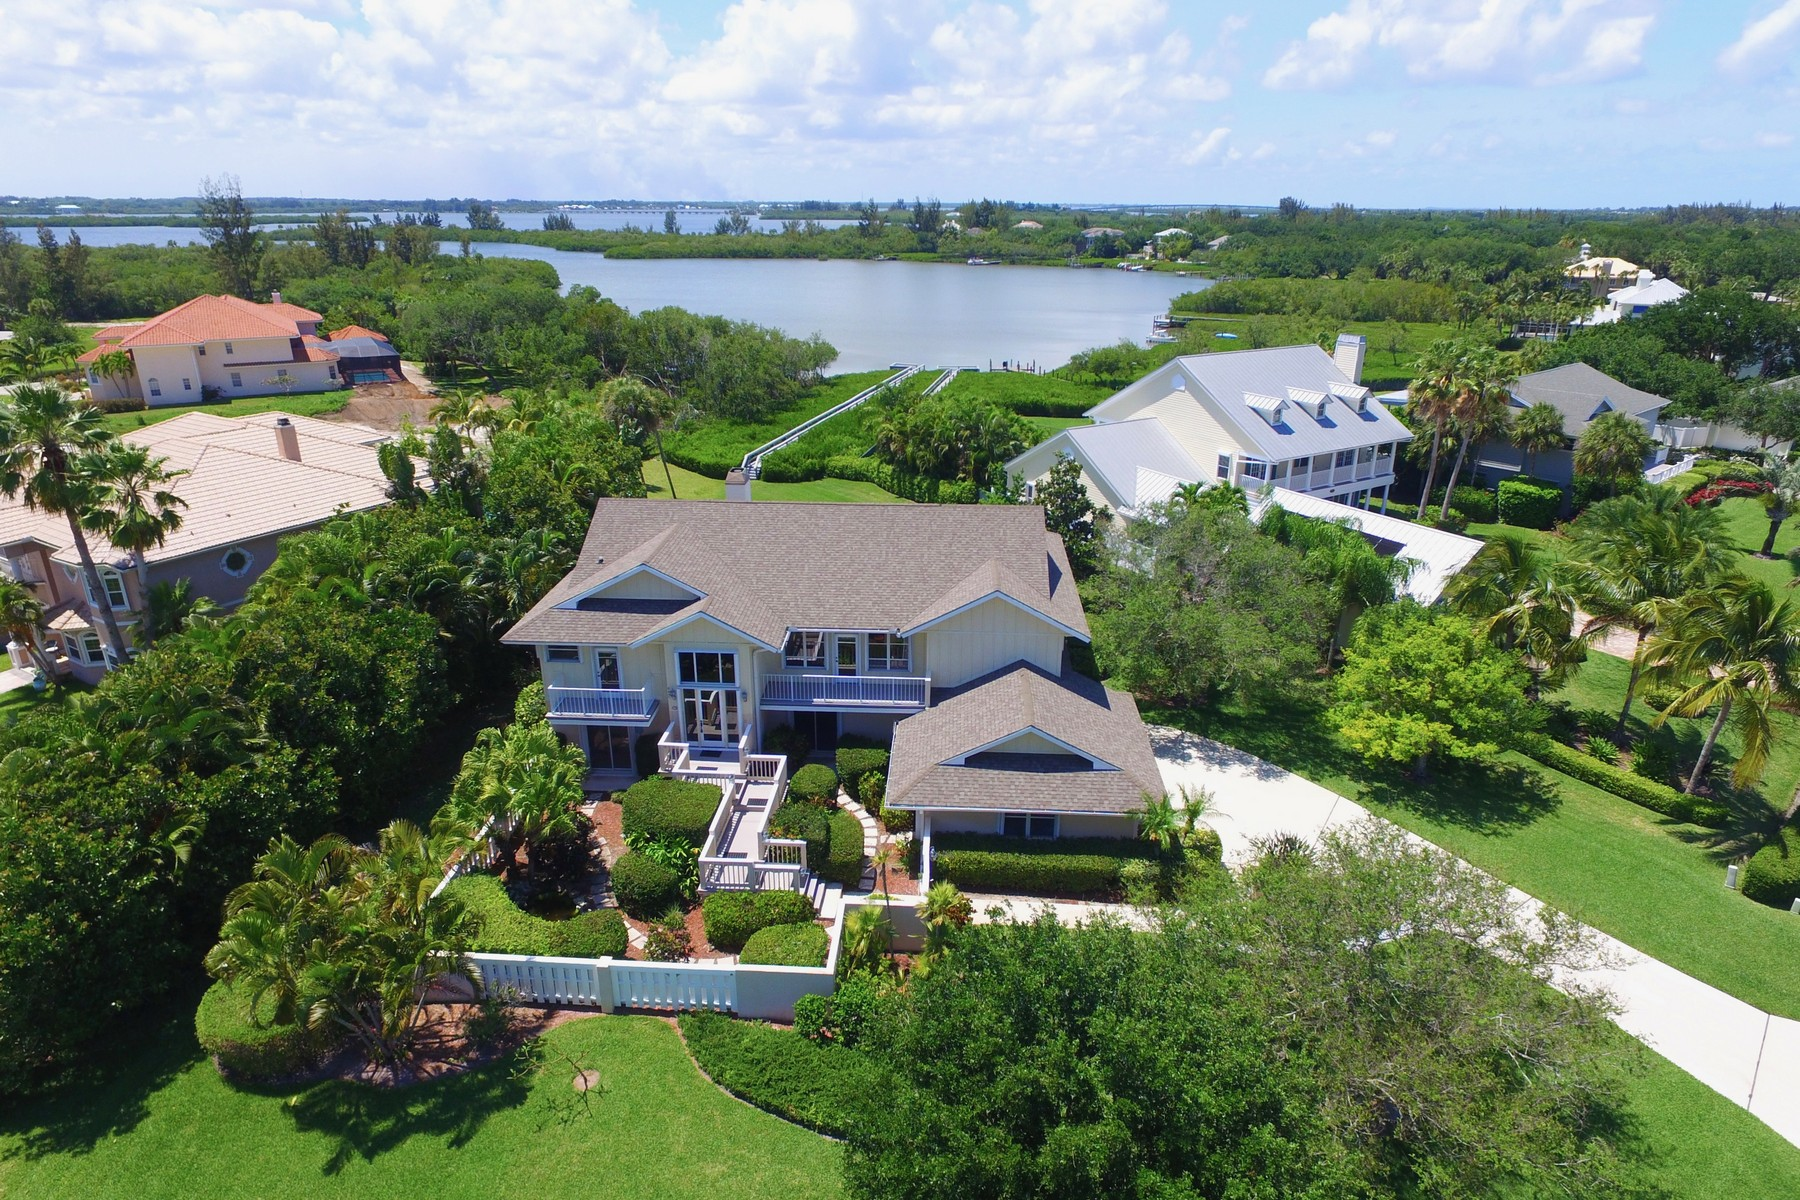 Single Family Home for Sale at Waterfront Estate with Private Dock 8485 Seacrest Drive Vero Beach, Florida 32963 United States